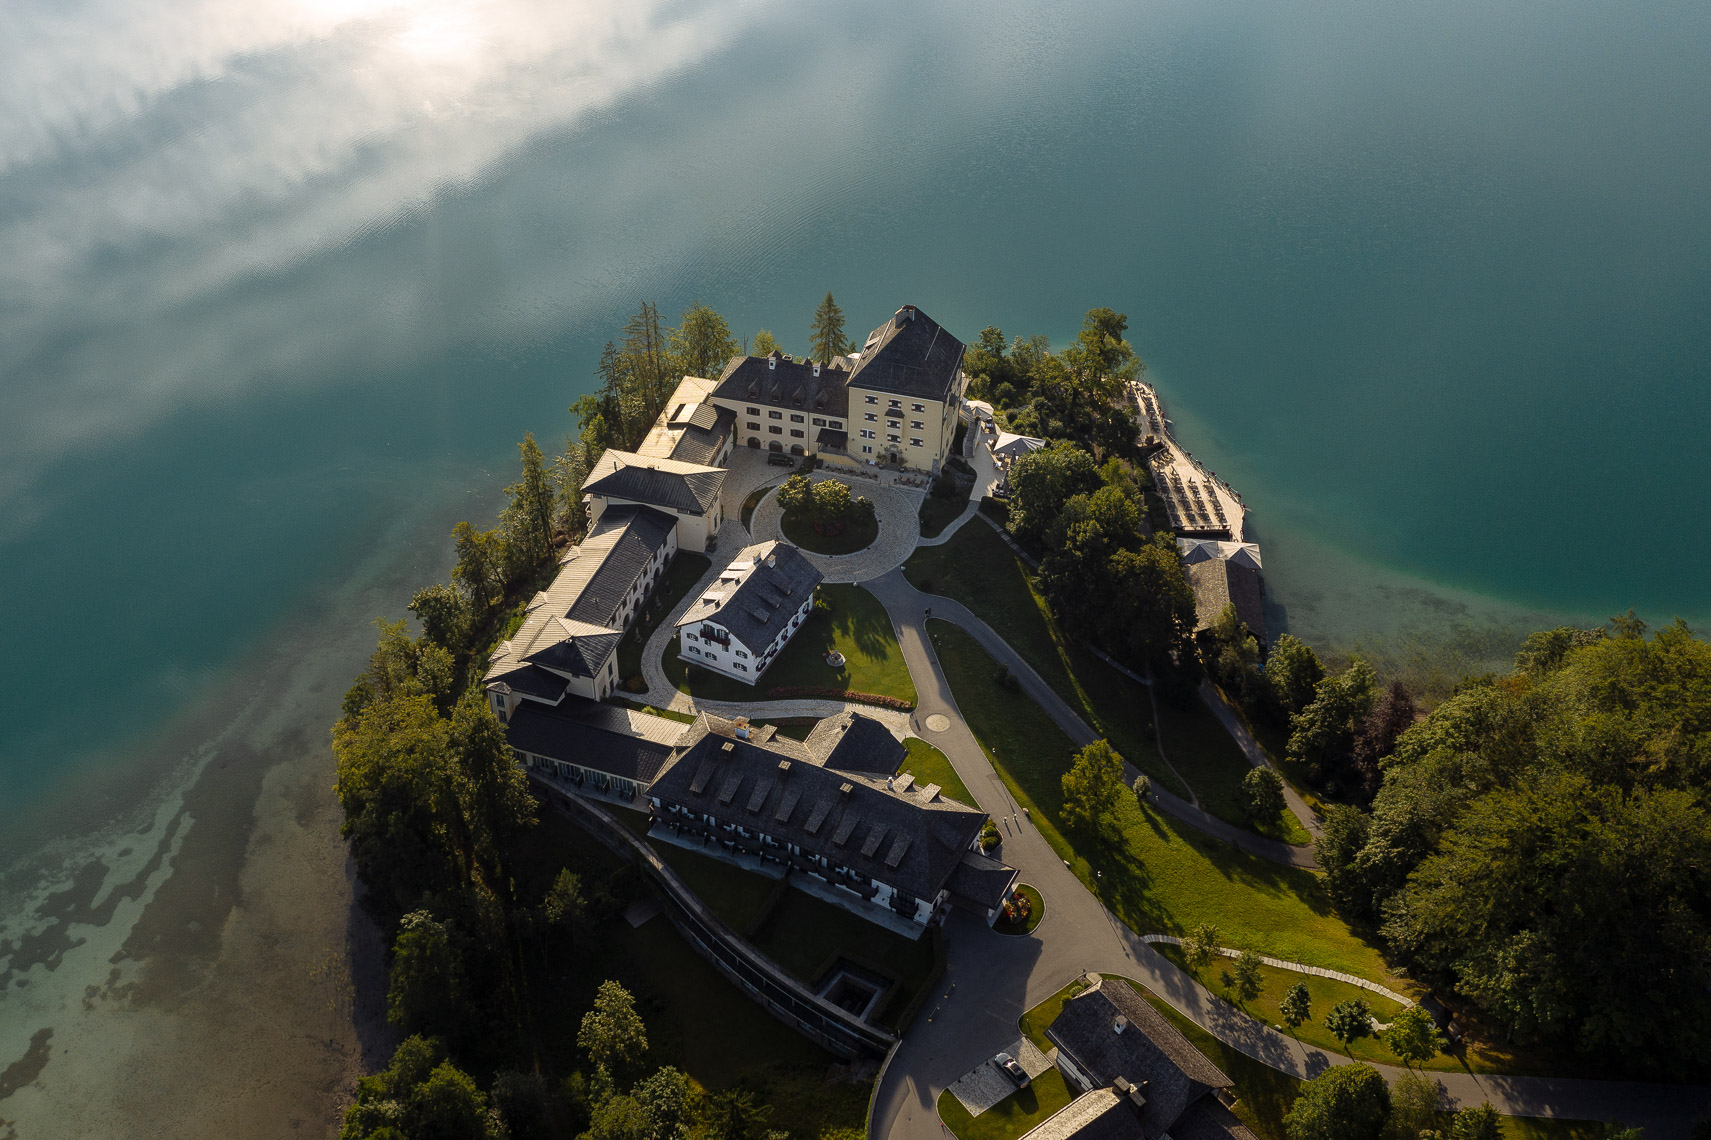 richard-schabetsberger-schloss-fuschl-drone-aerial-photography-001